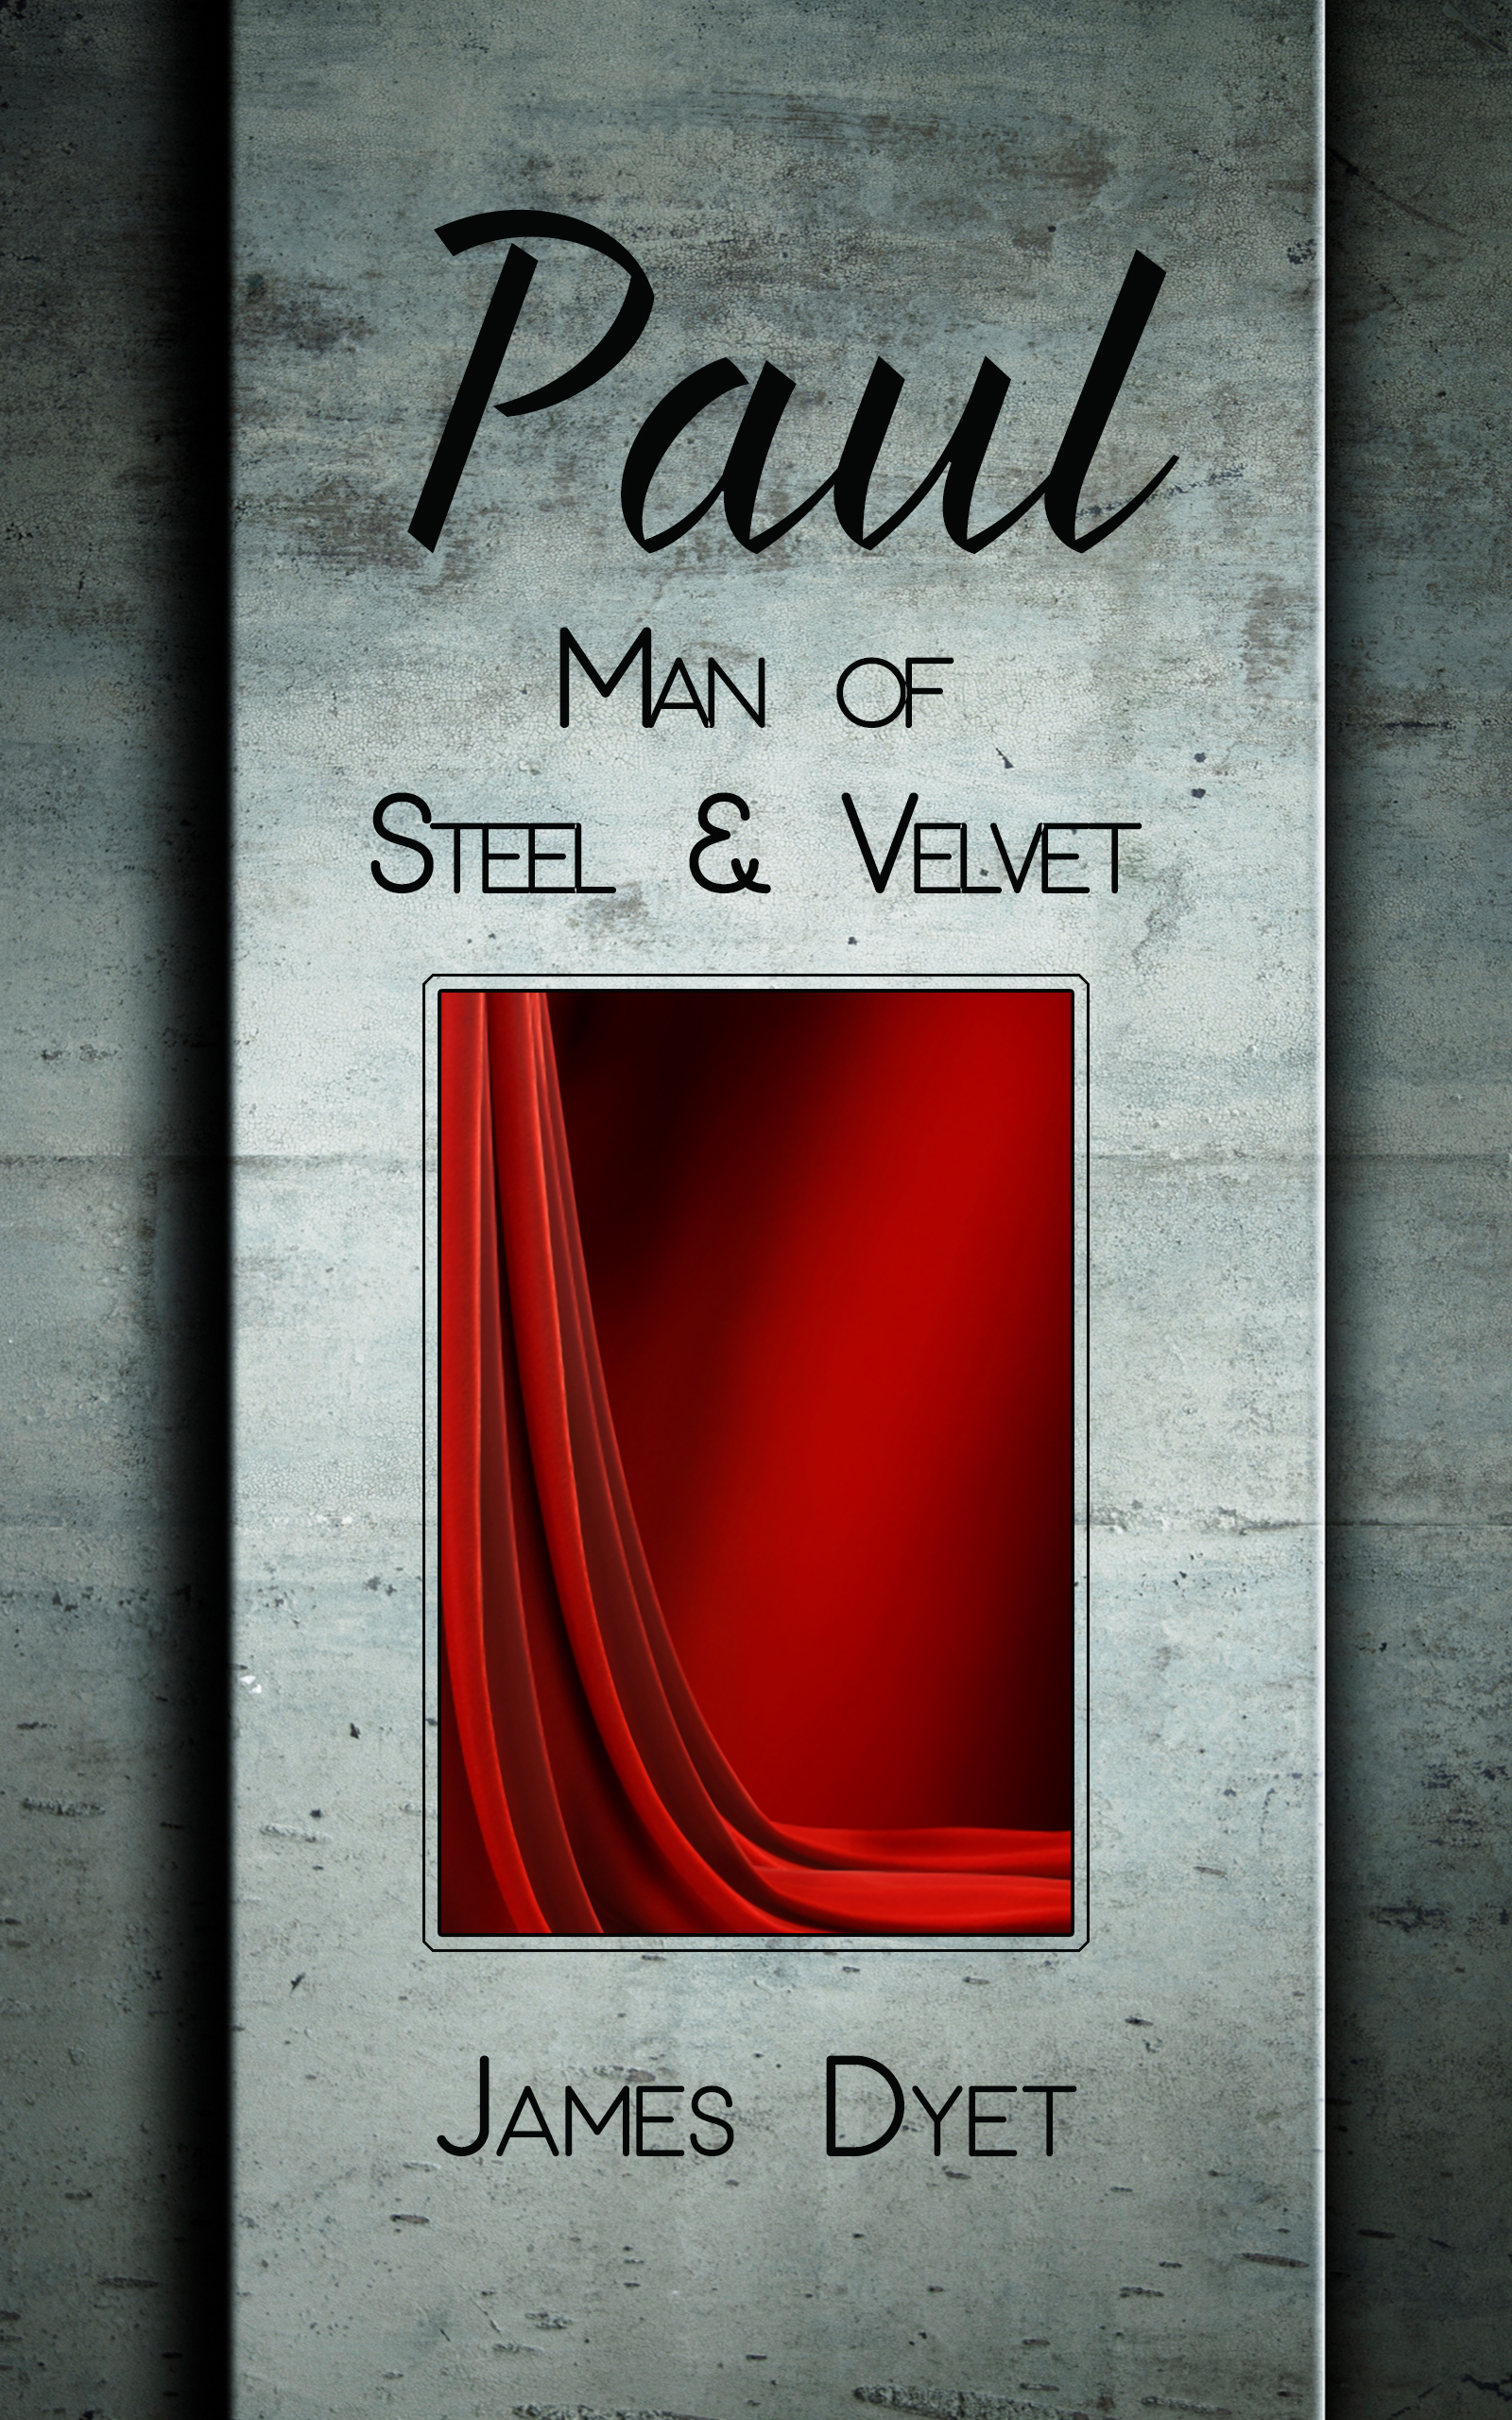 Paul: Man of Steel & Velvet by James Dyet